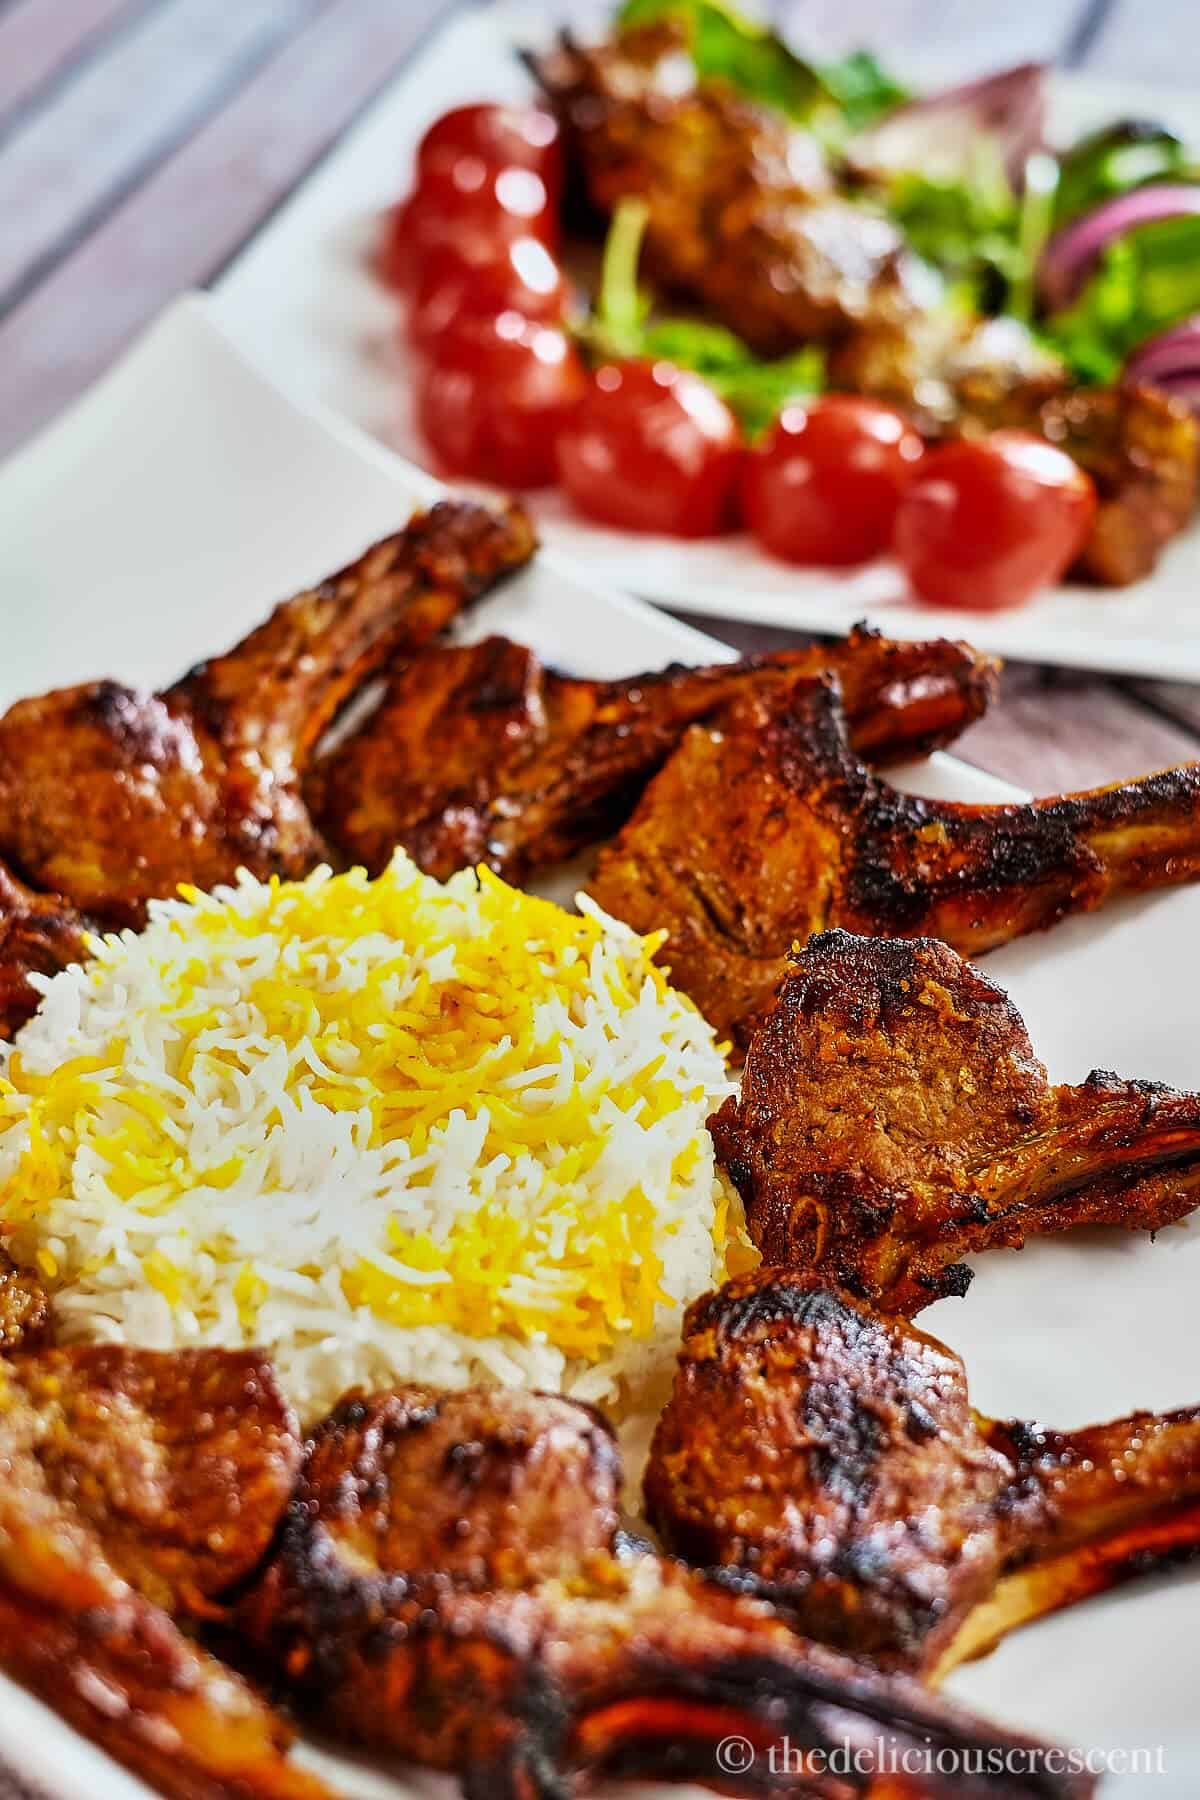 Grilled lamb chops served around saffron rice.